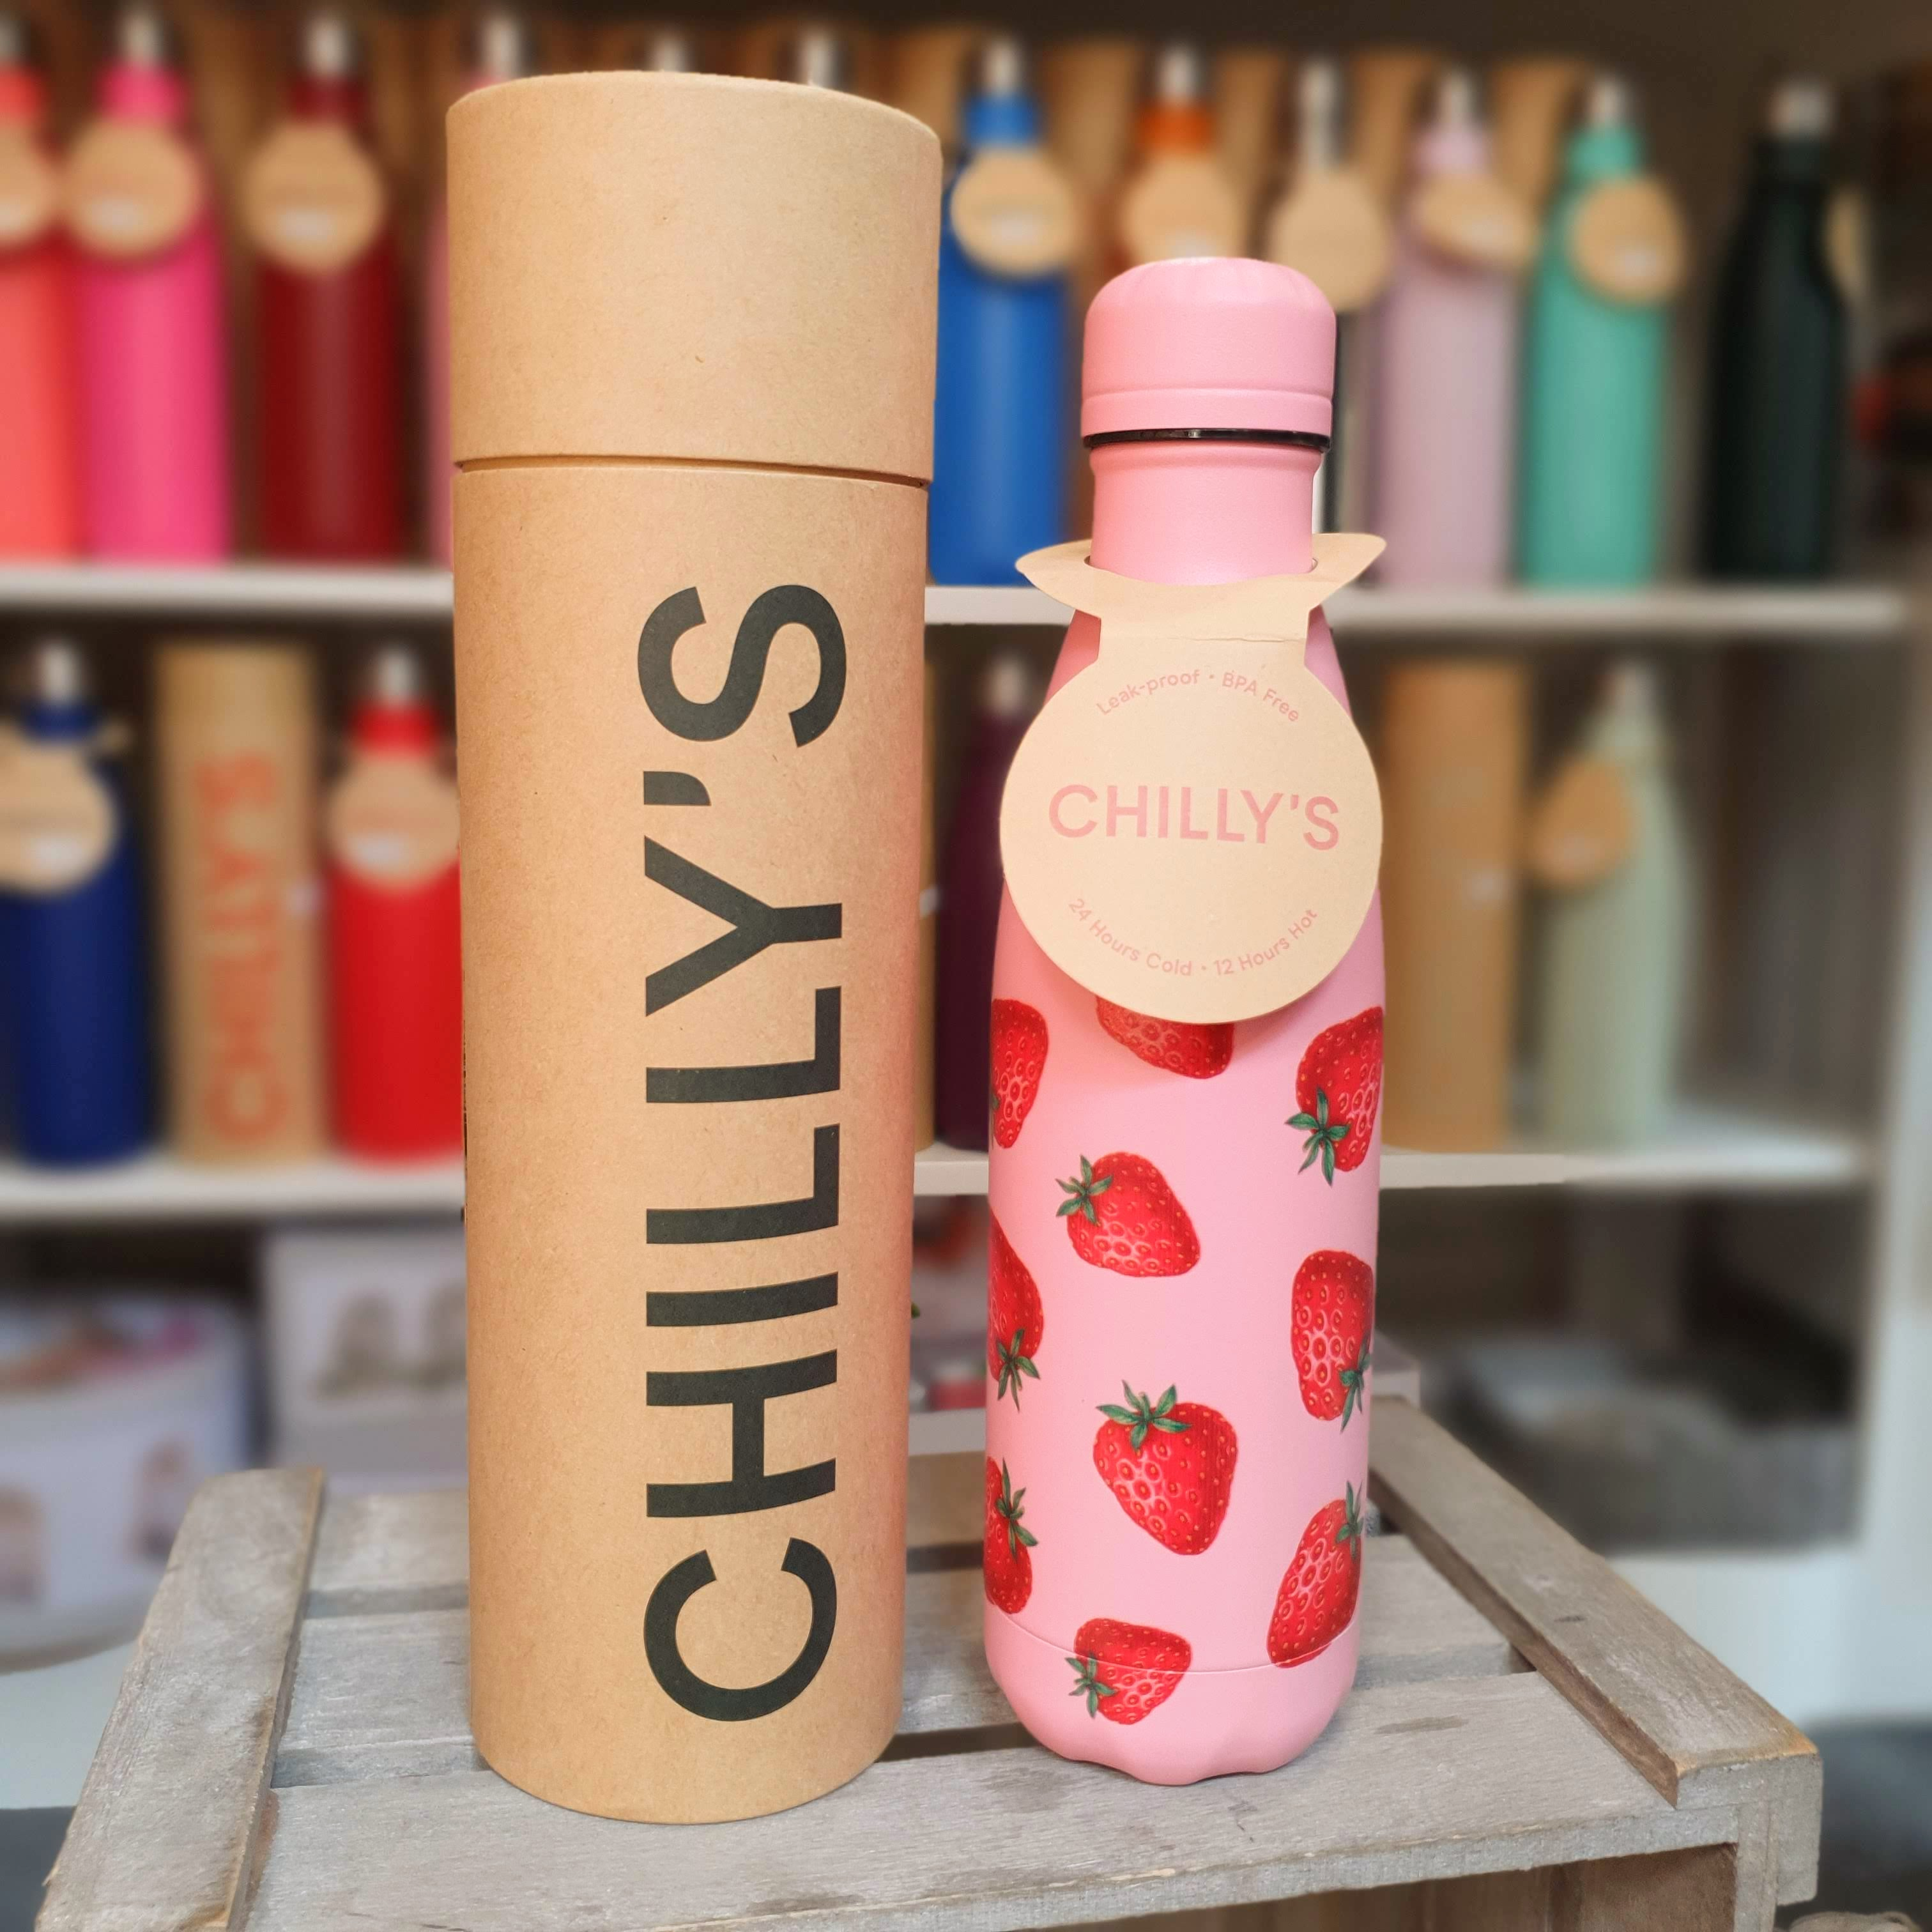 Strawberry Chilly's Bottle